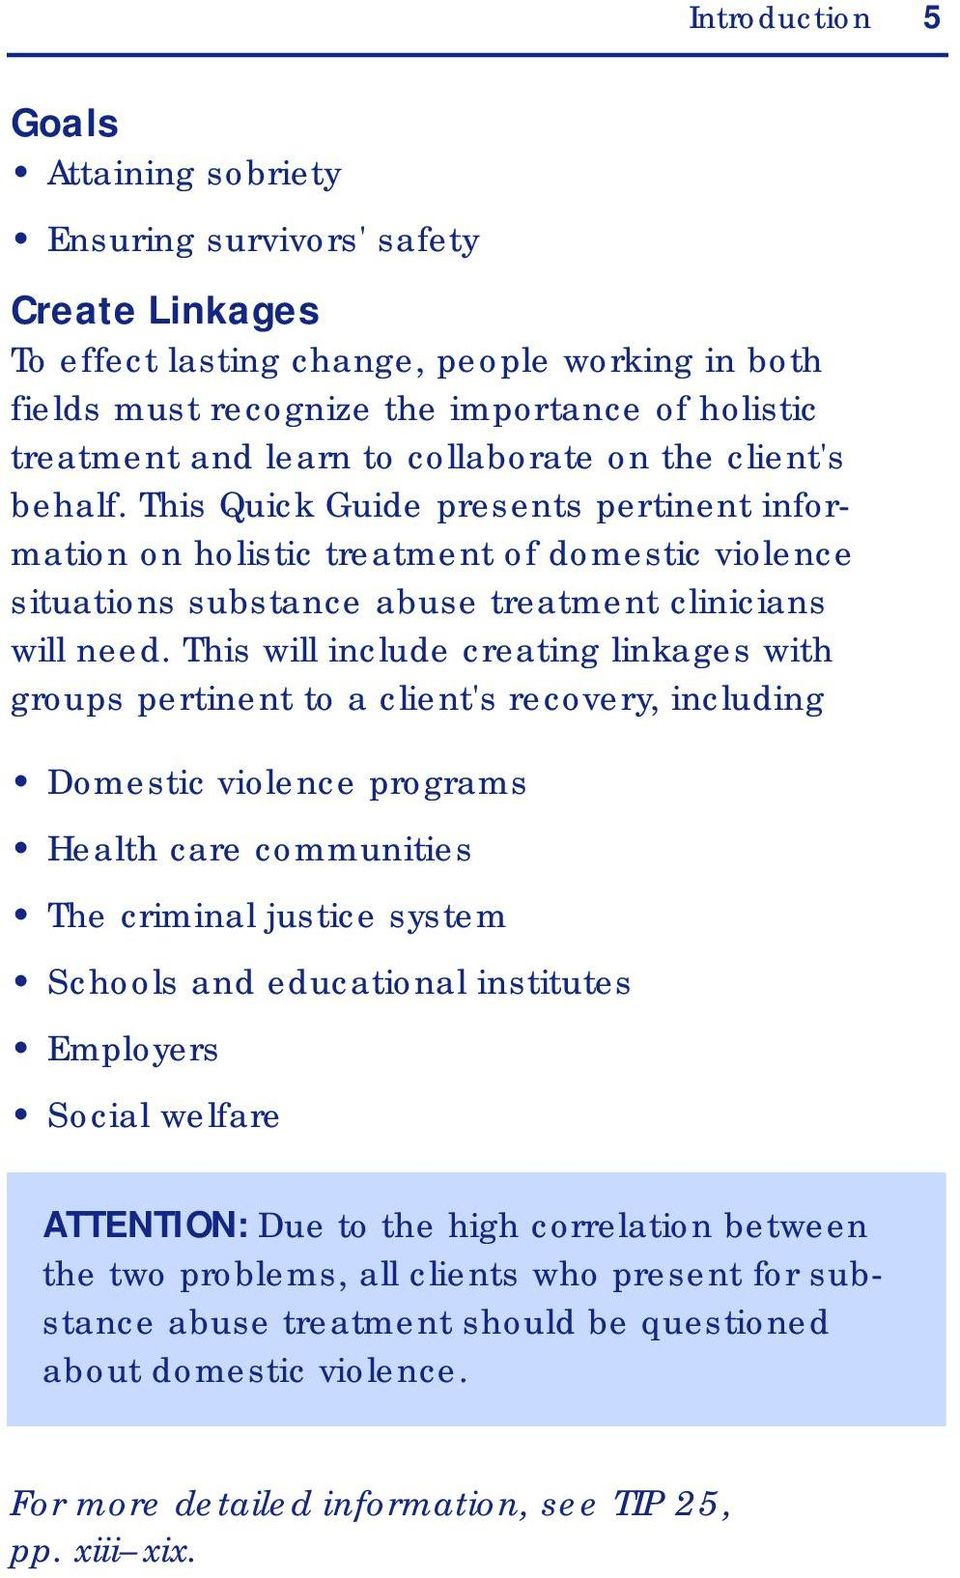 This will include creating linkages with groups pertinent to a client's recovery, including Domestic violence programs Health care communities The criminal justice system Schools and educational